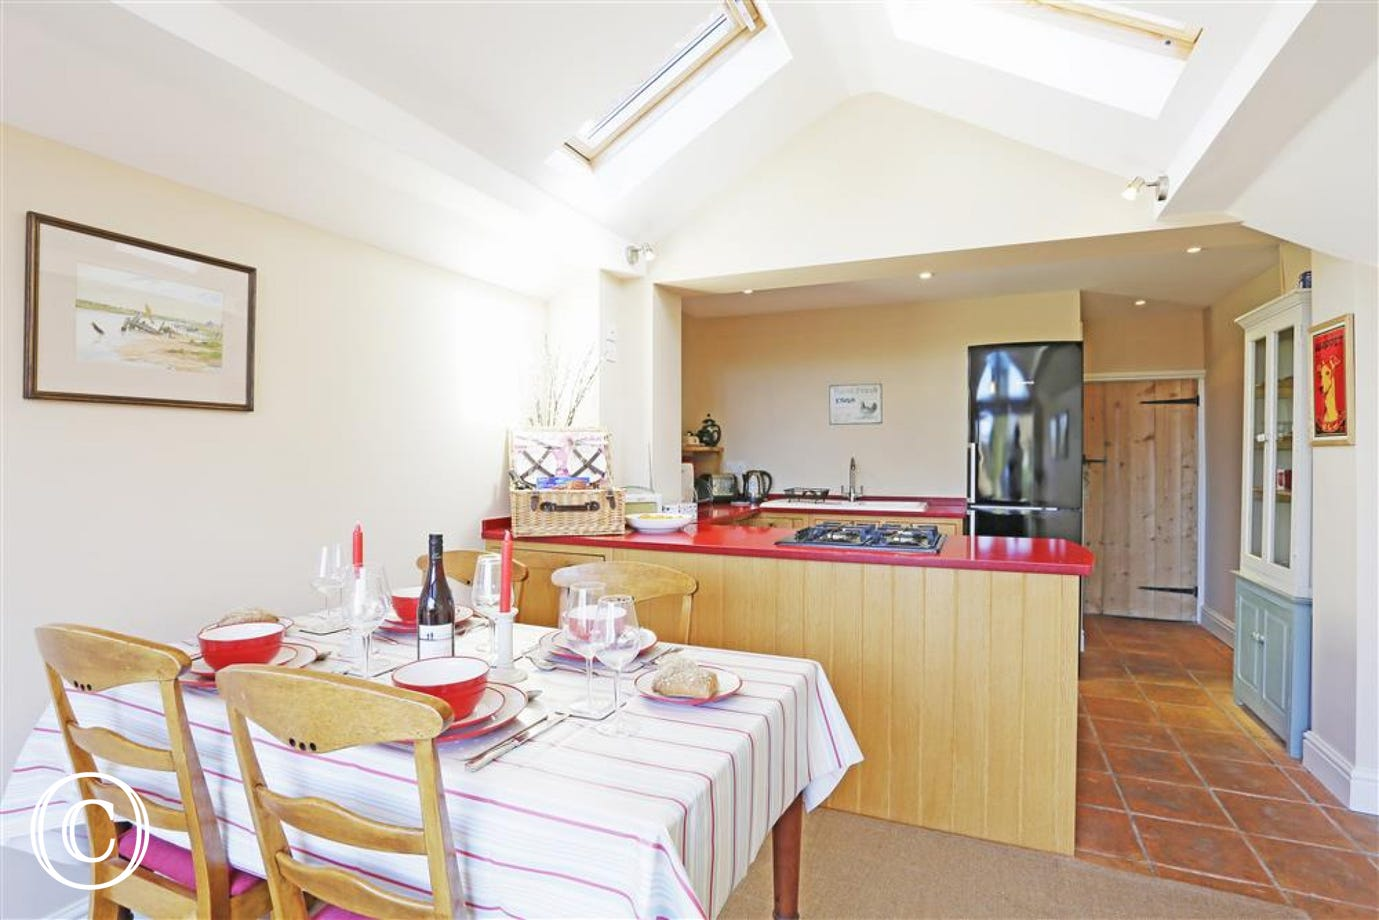 Enjoy large meals together in this family-friendly property.